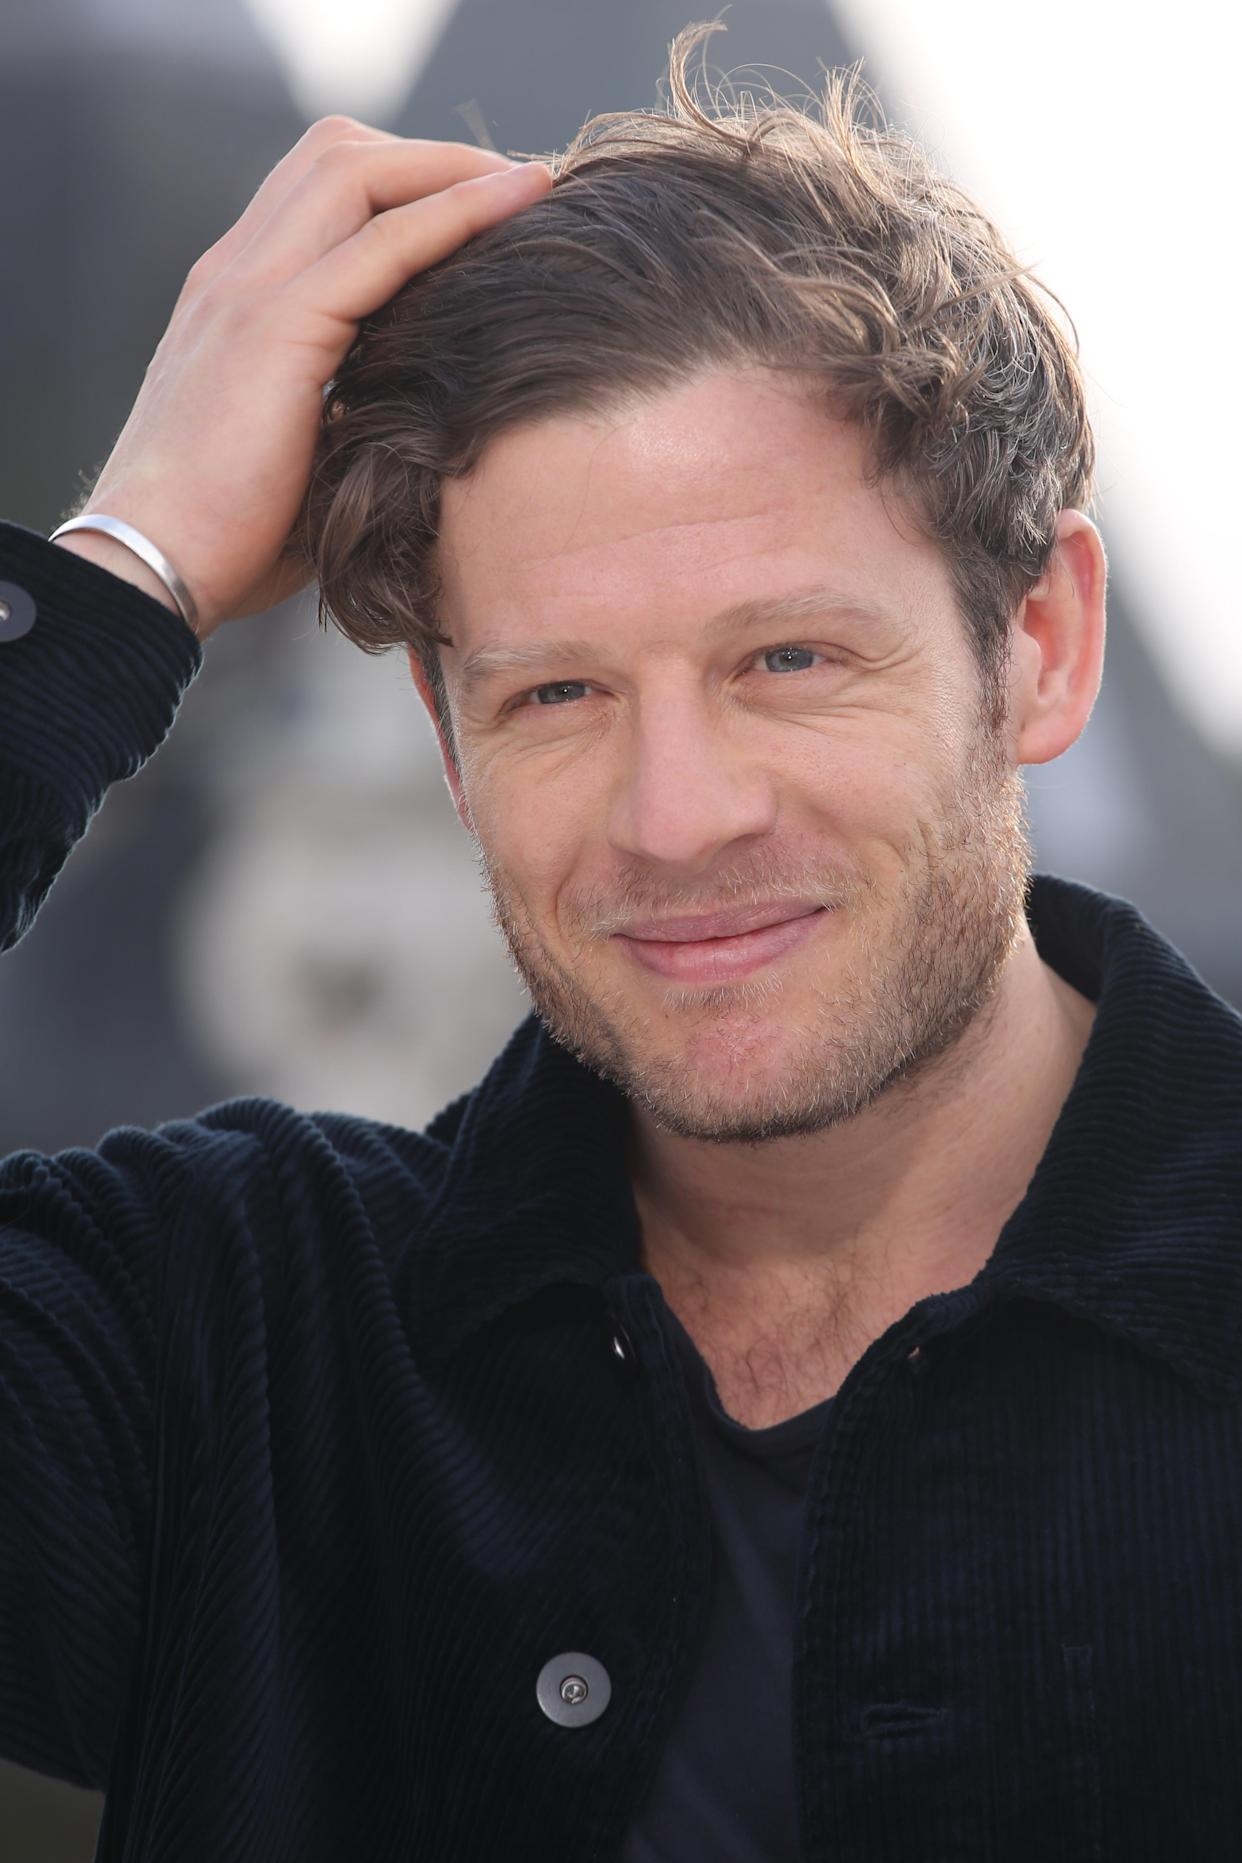 James Norton attending the Little Women photocall held at the Corinthia, London.